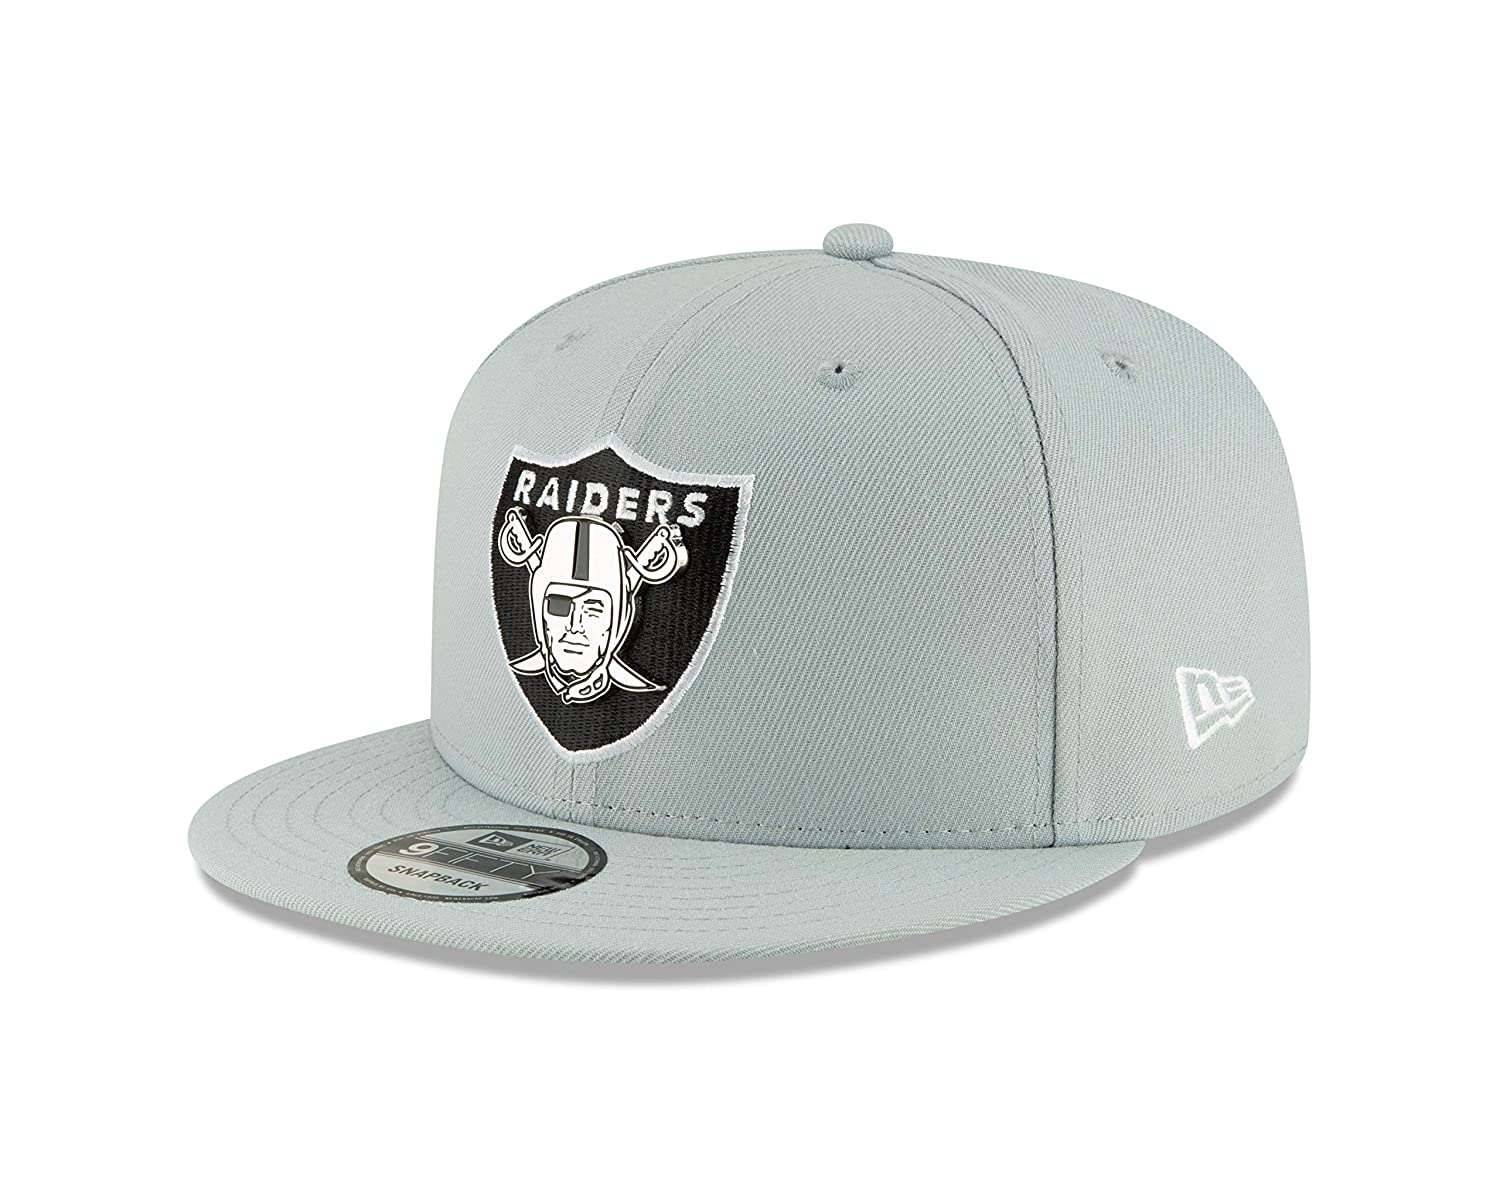 df3294566e8 Amazon.com   New Era Oakland Raiders Metal and Thread 9FIFTY Snapback  Adjustable NFL Hat   Sports   Outdoors